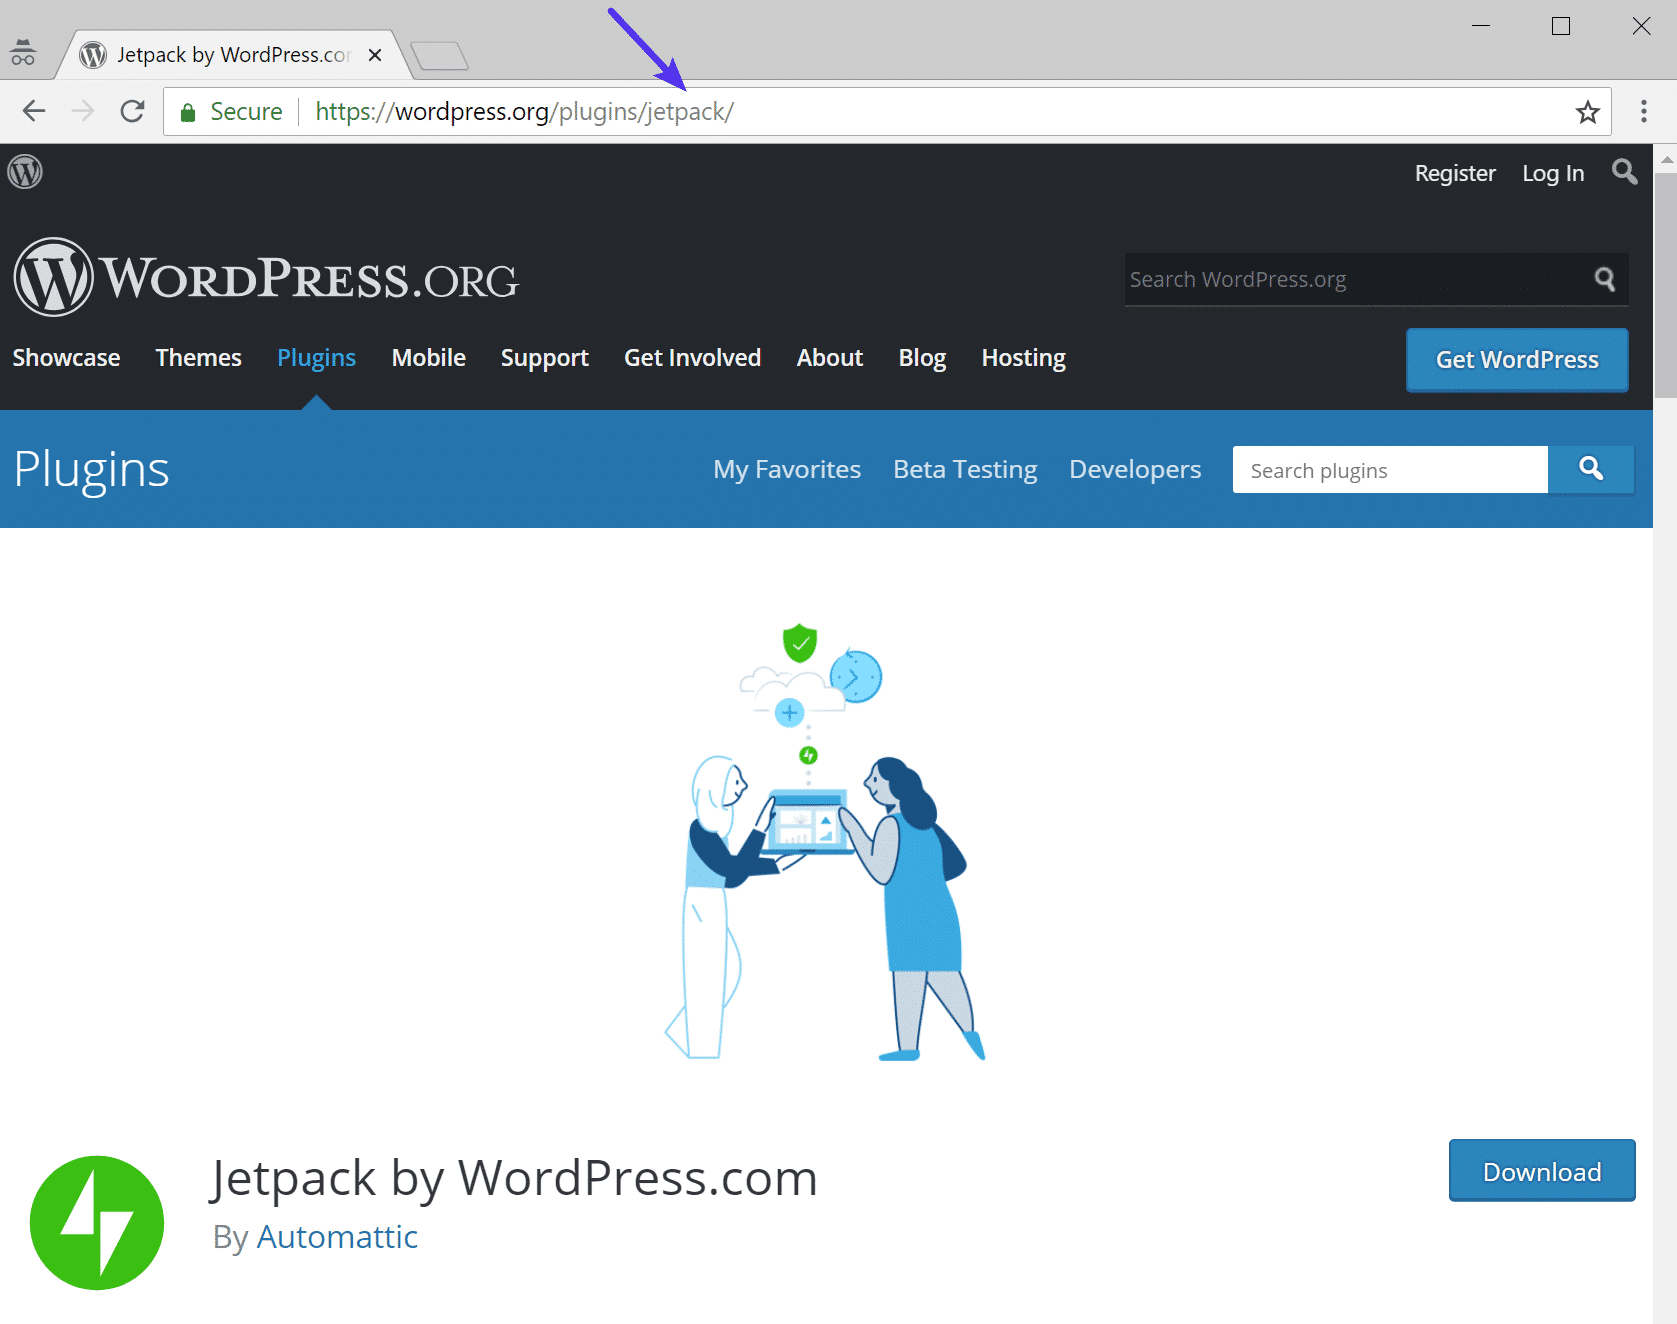 WordPress plugin repository URL